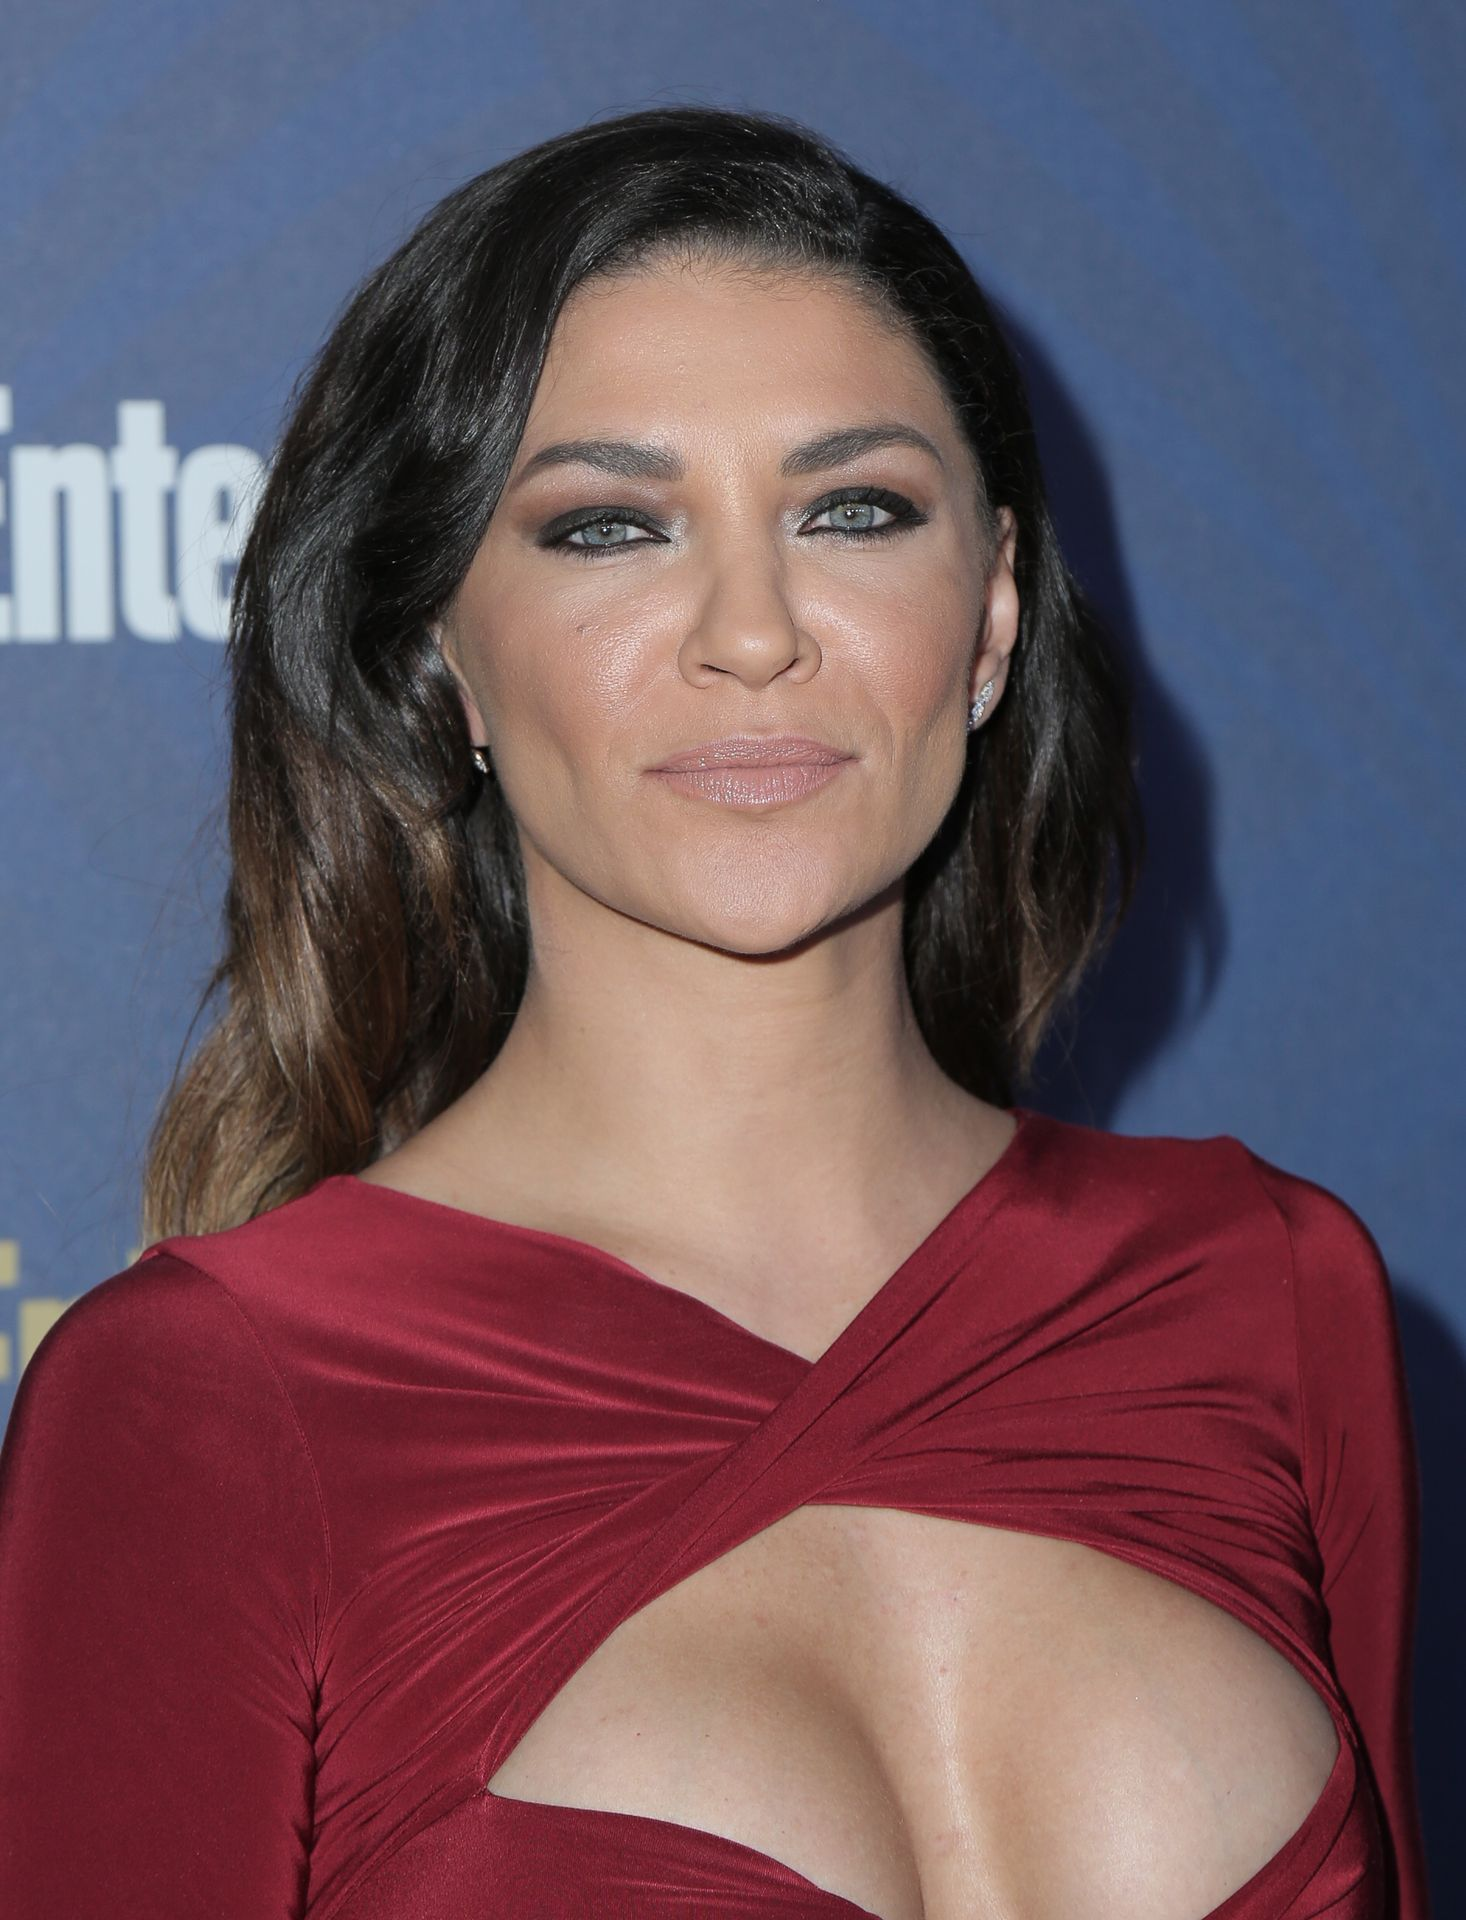 Jessica Szohr Shows Her Cleavage At The Entertainment Weekly Pre Sag Awards Celebration 0022